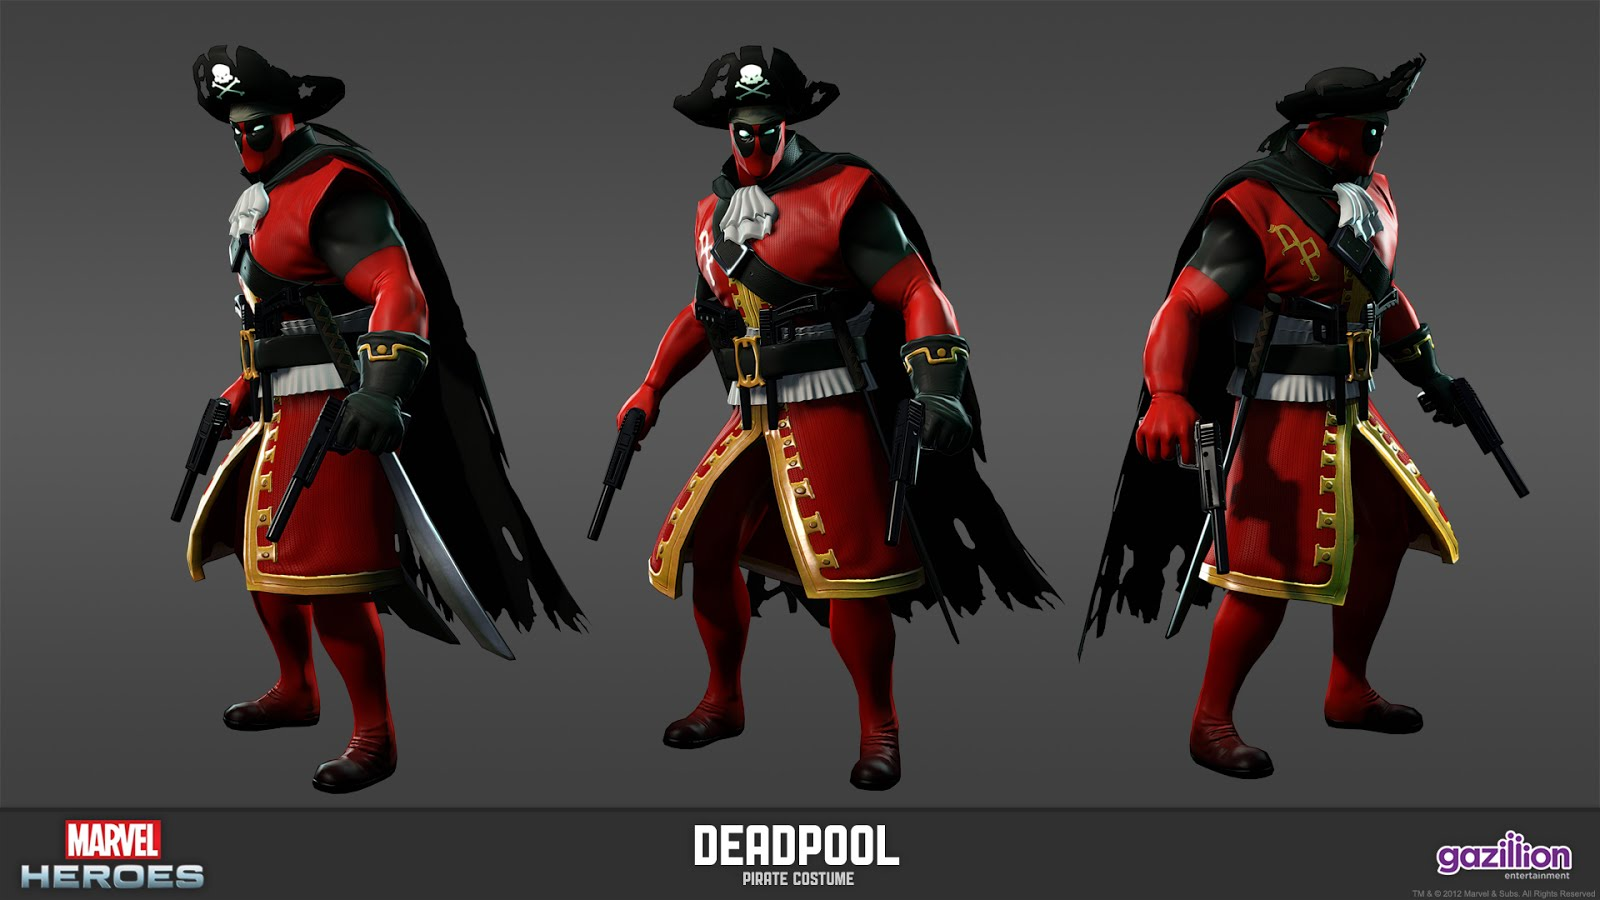 Deadpool costume has been announced for the upcoming Marvel Heroes